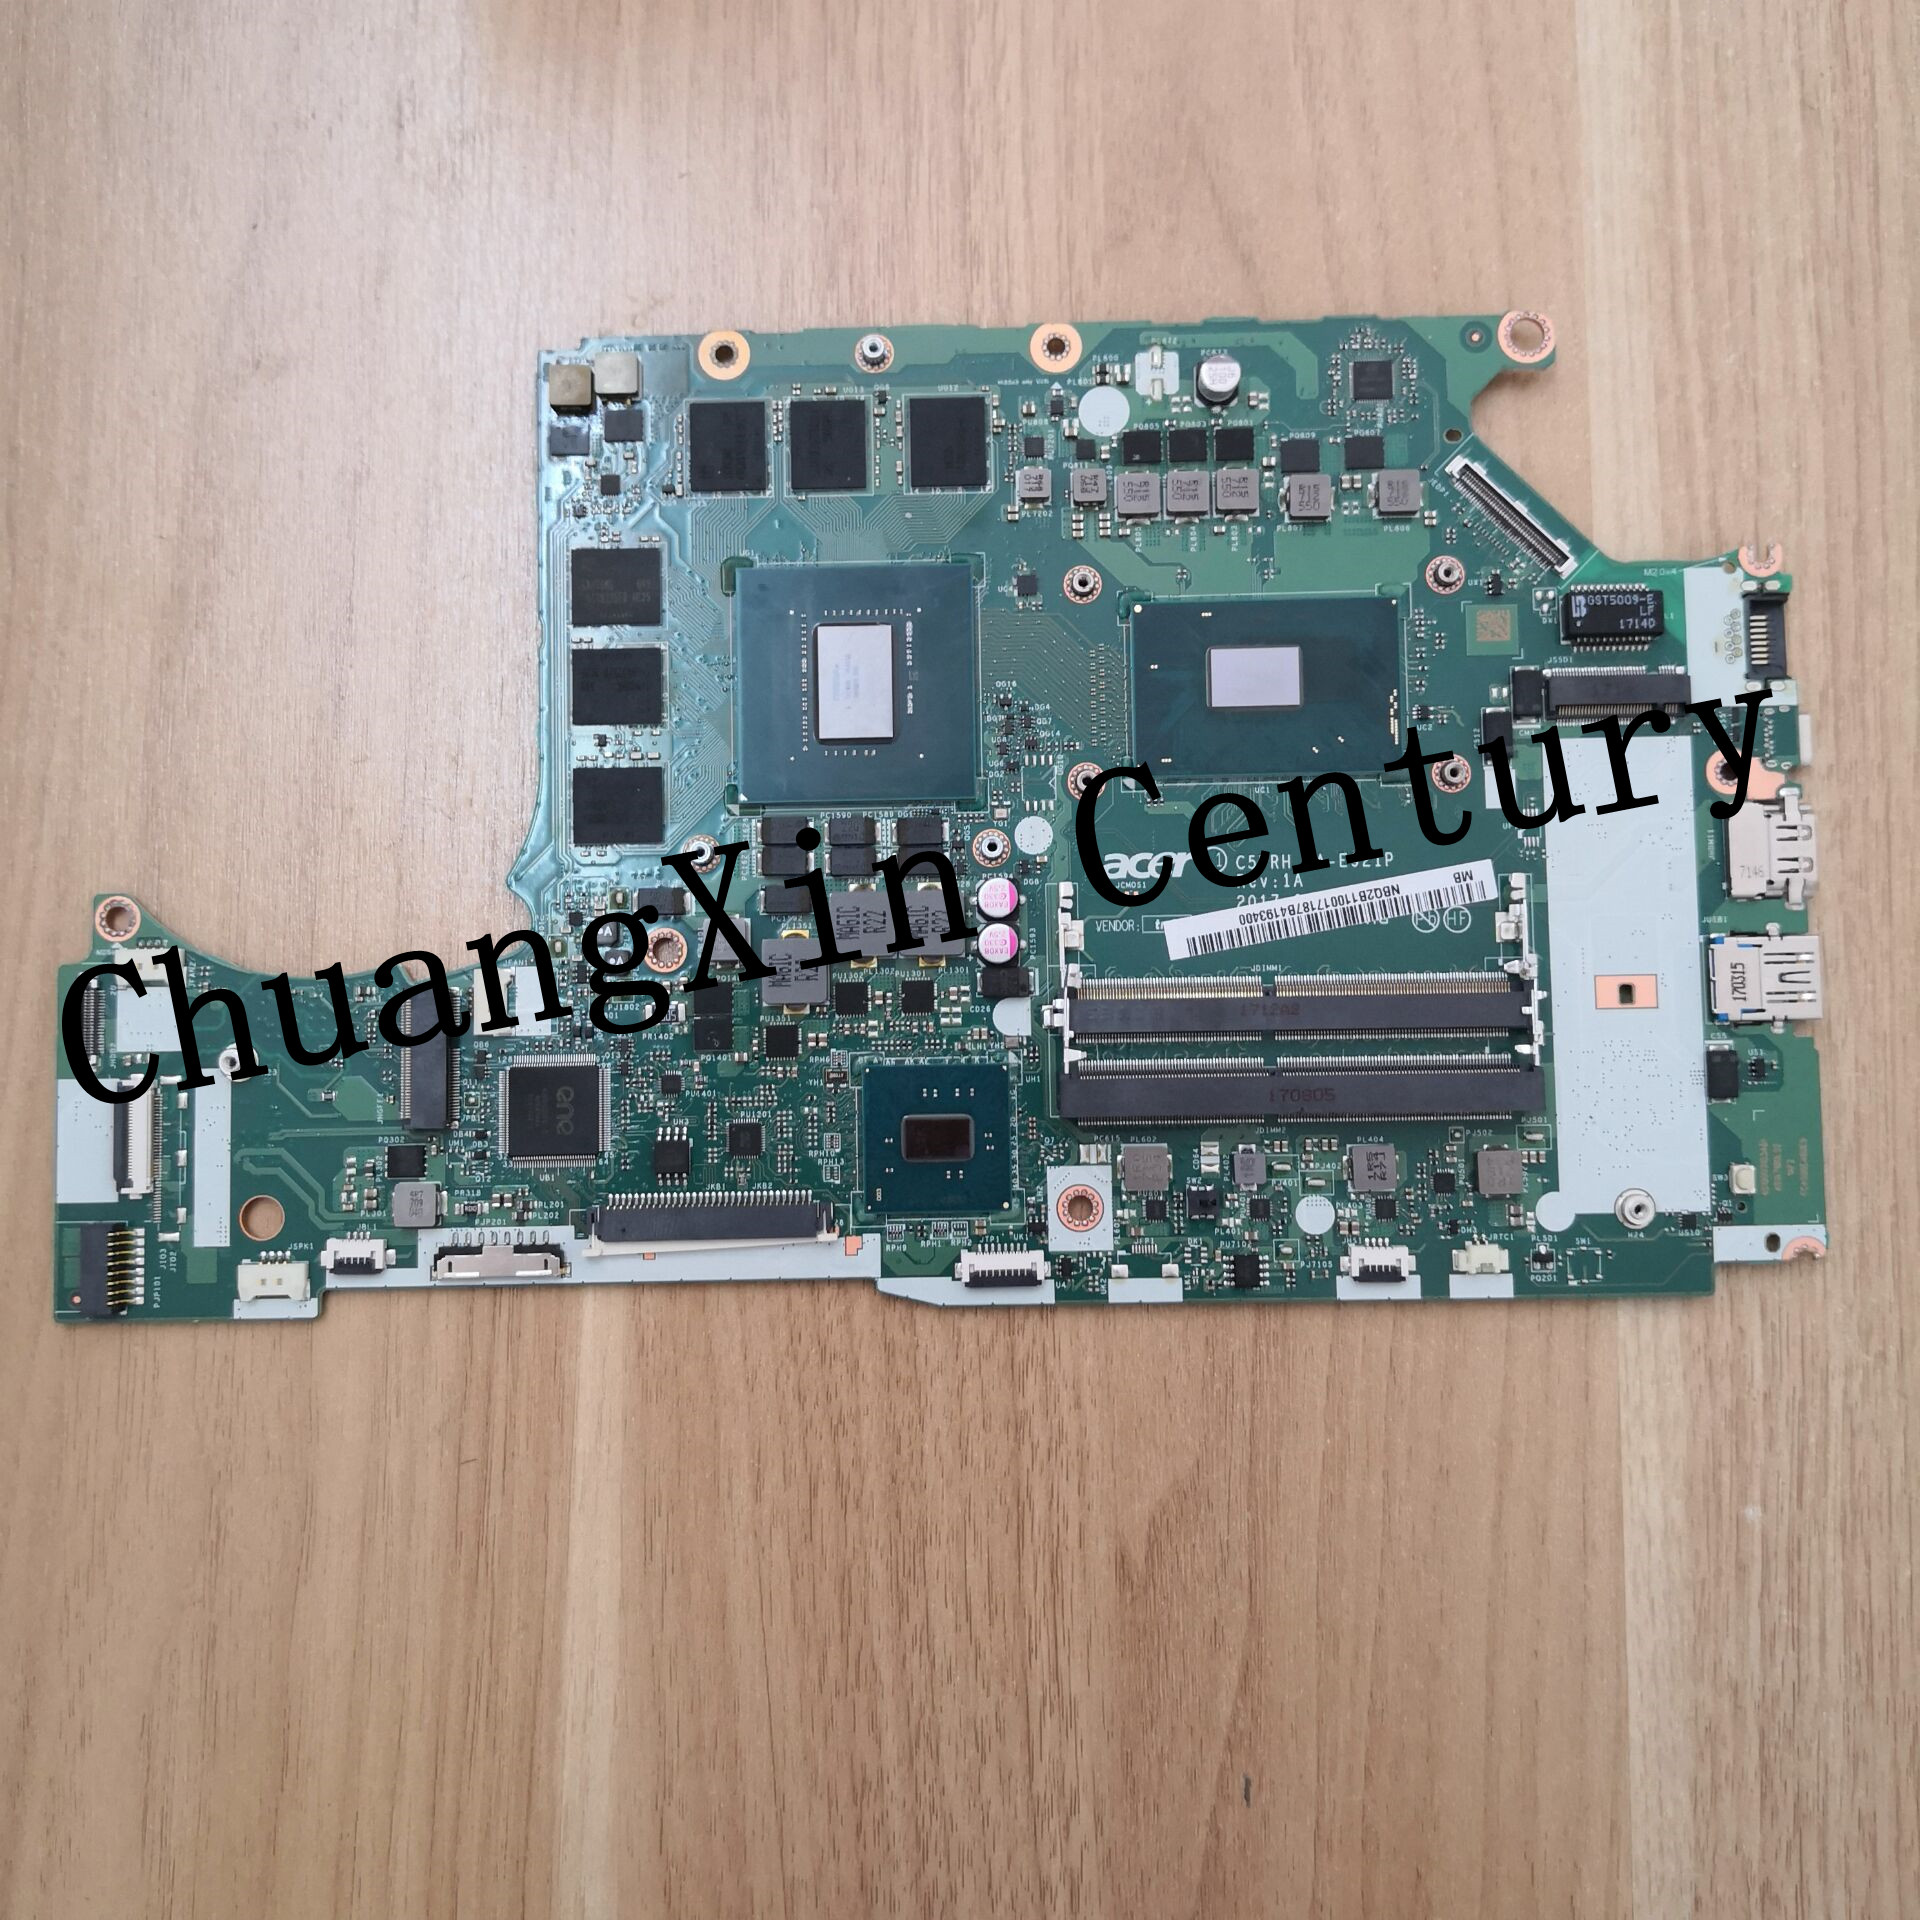 Us 635 88 For C5prh La E921p For Acer Predator Helios 300 G3 571 Mbdummy057 Laptop Motherboard With I7 Cpu Gtx 1060 Gpu Ddr4 100 Test In Laptop